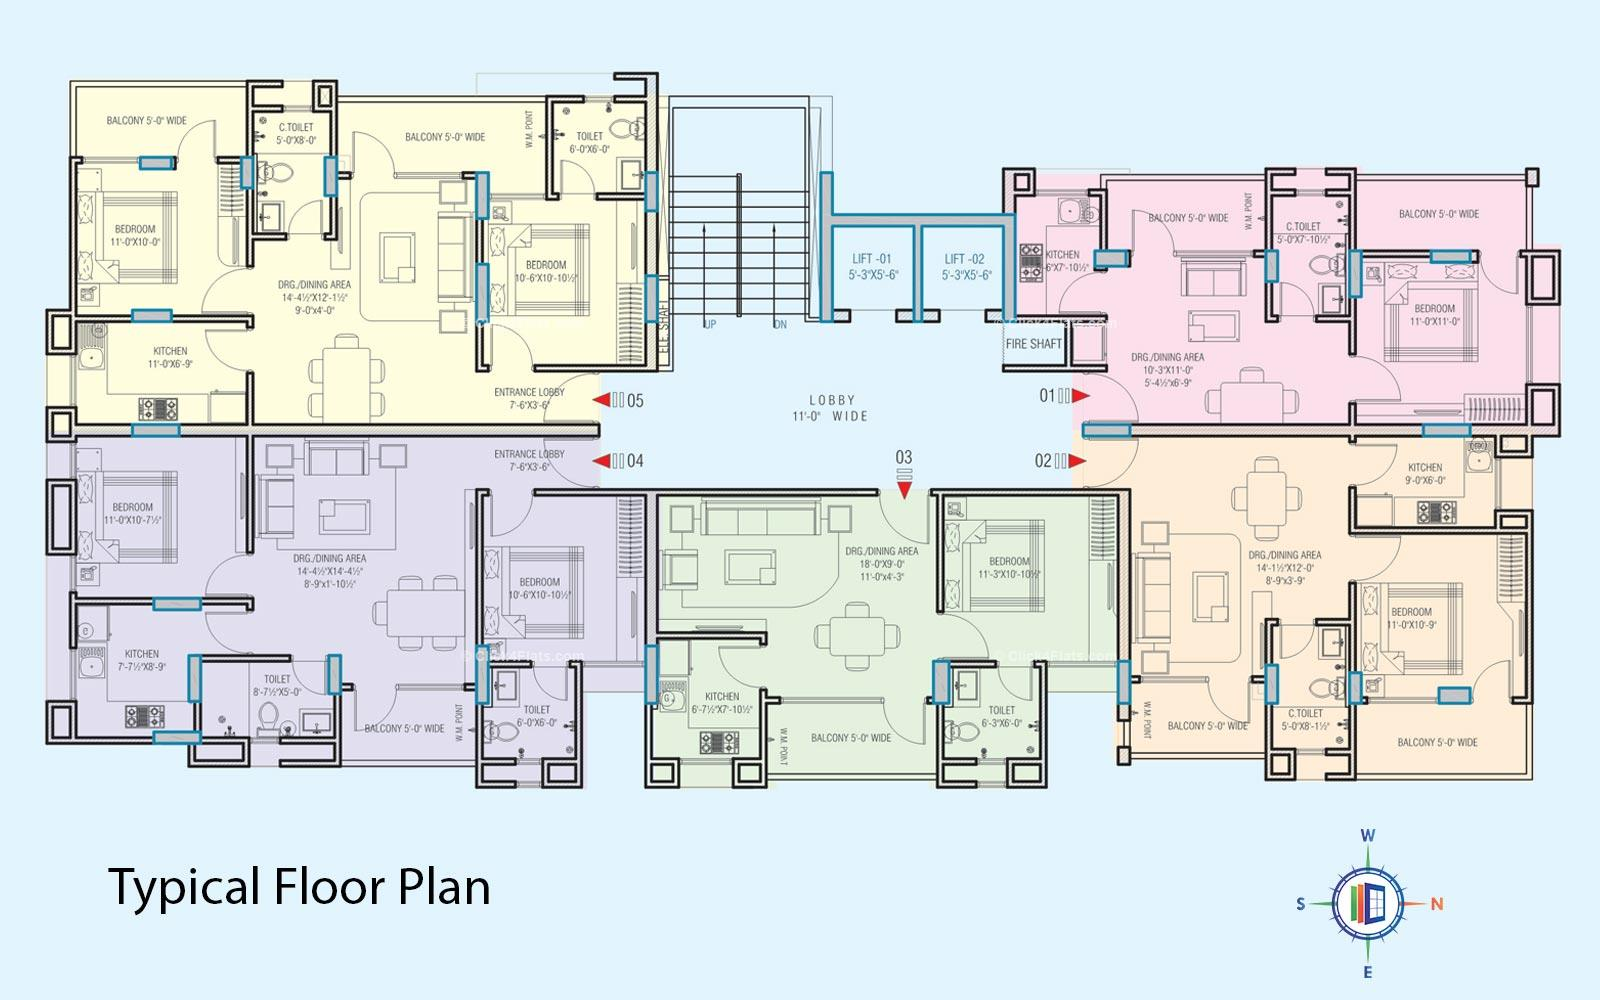 Platinum Heights Typical Floor Plan